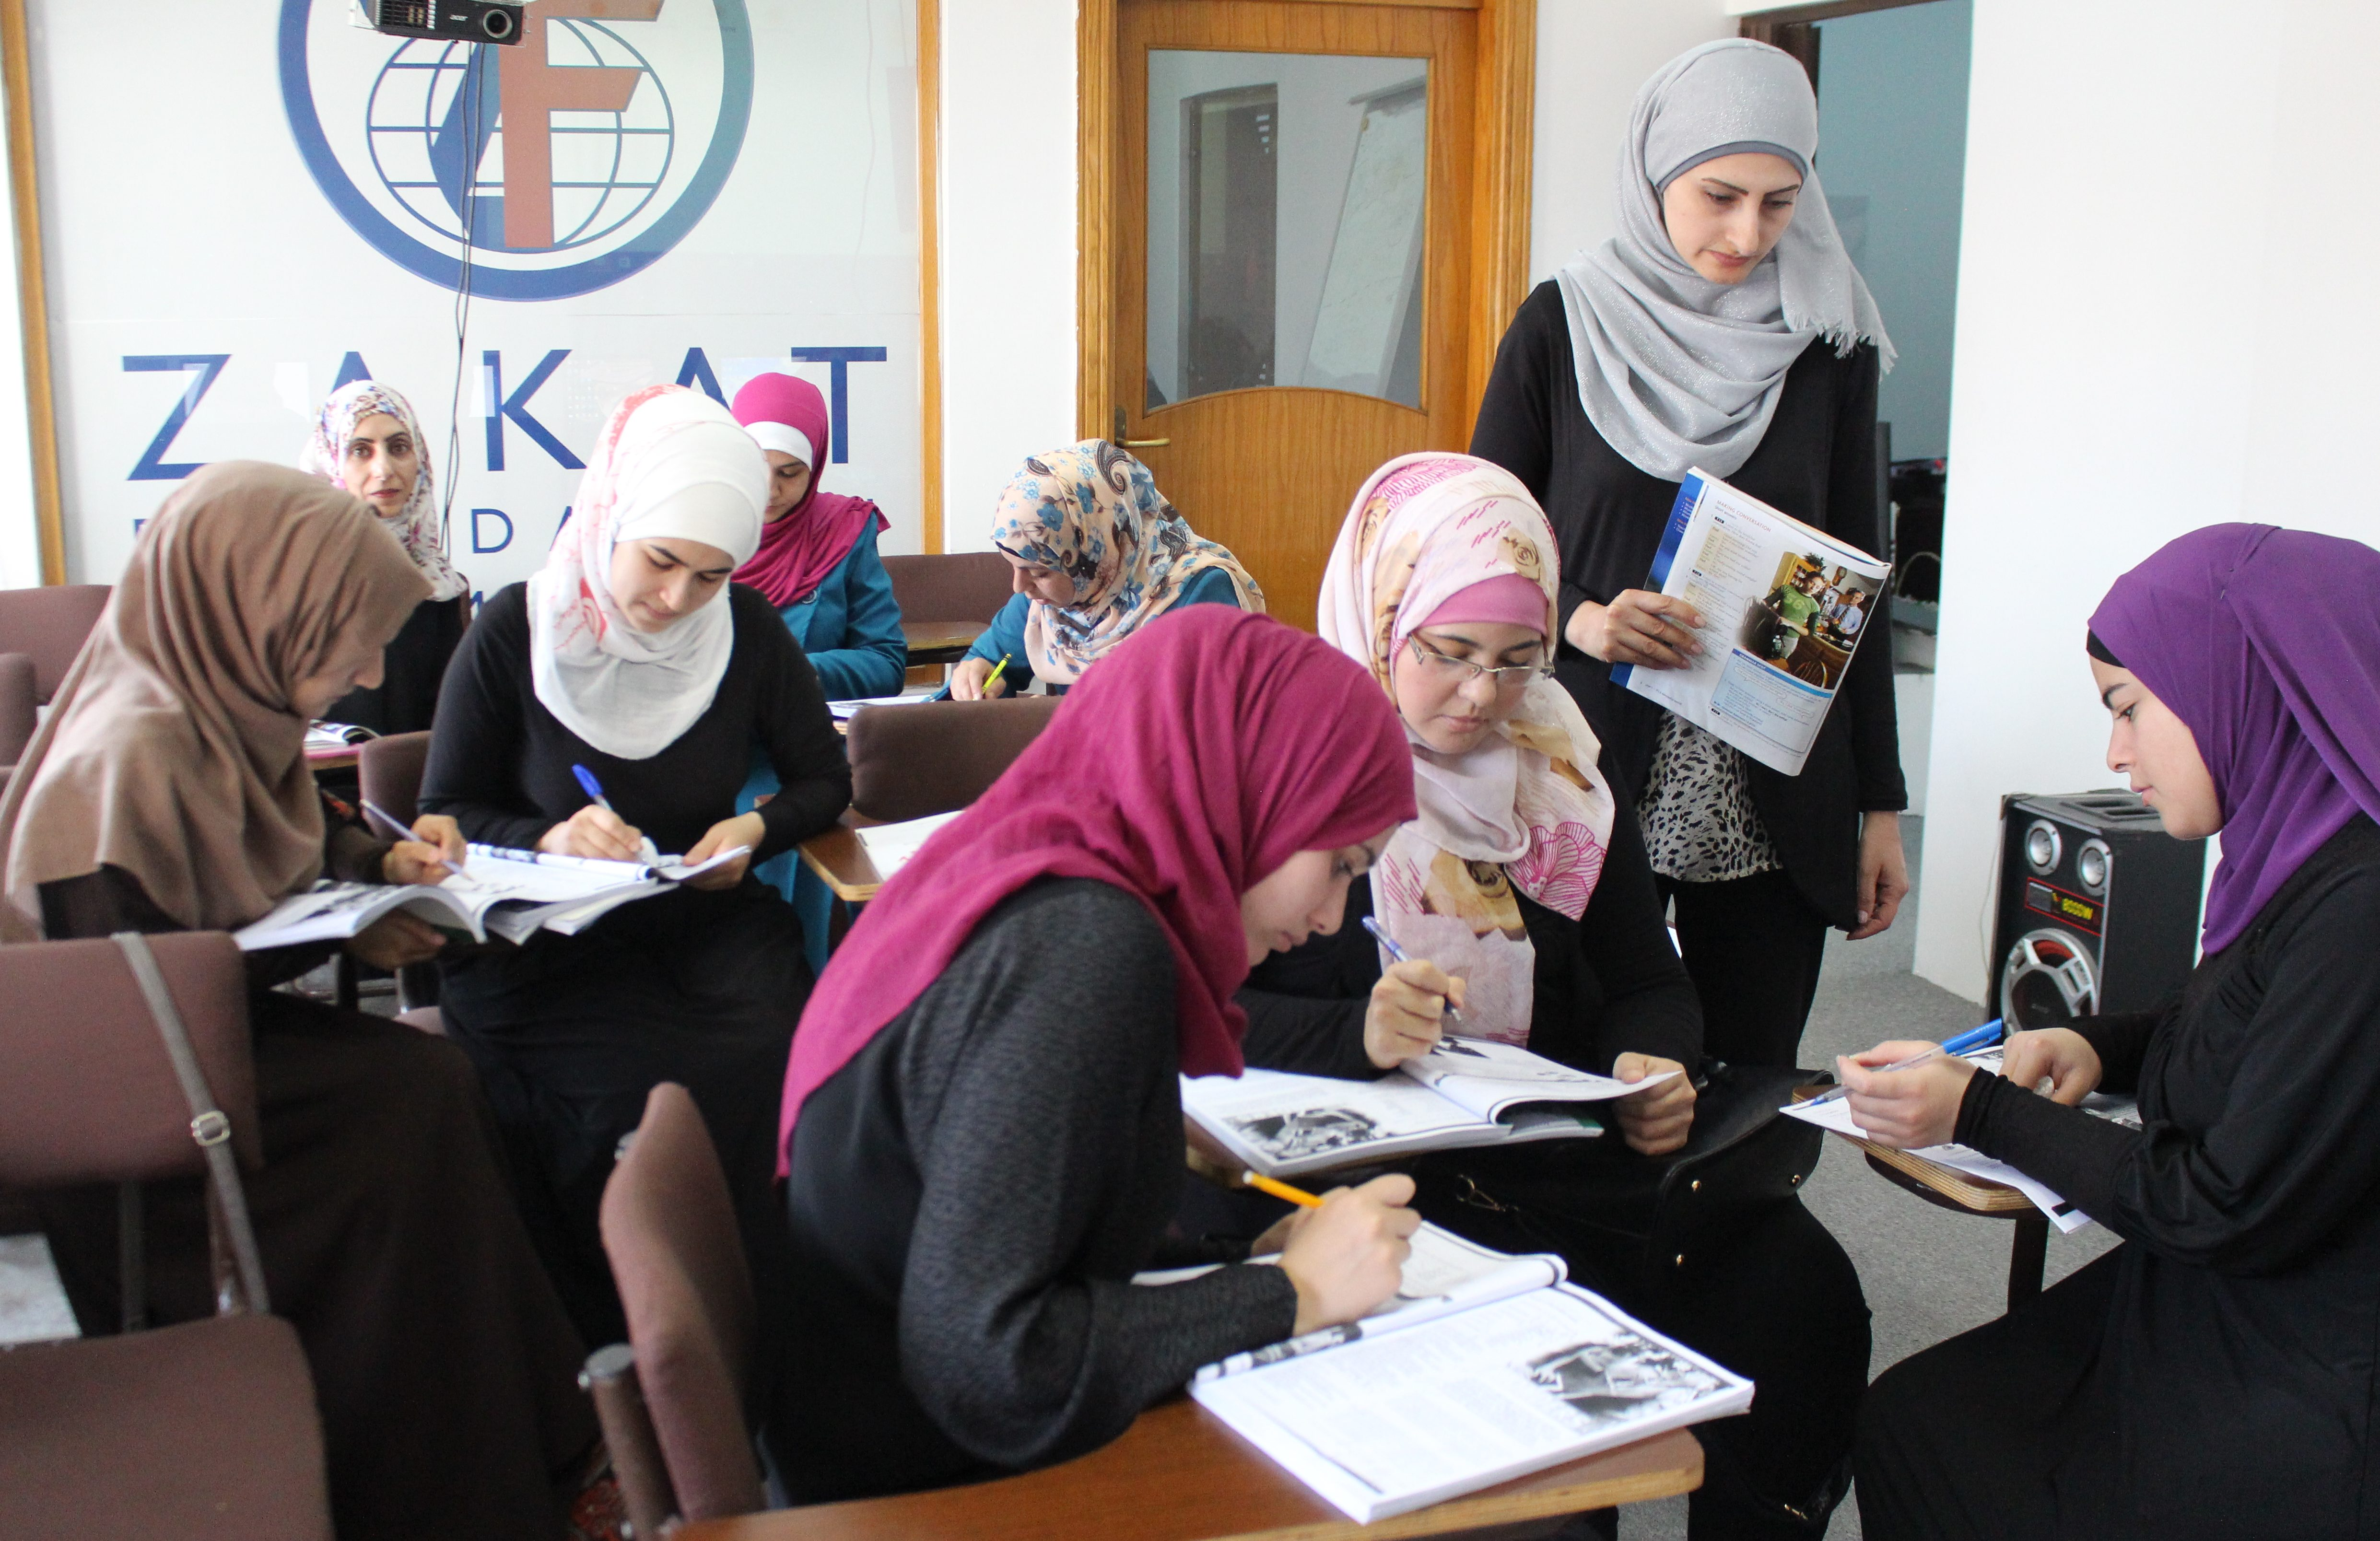 Refugee women from Syria take classes at the ZF Vocational Training Center